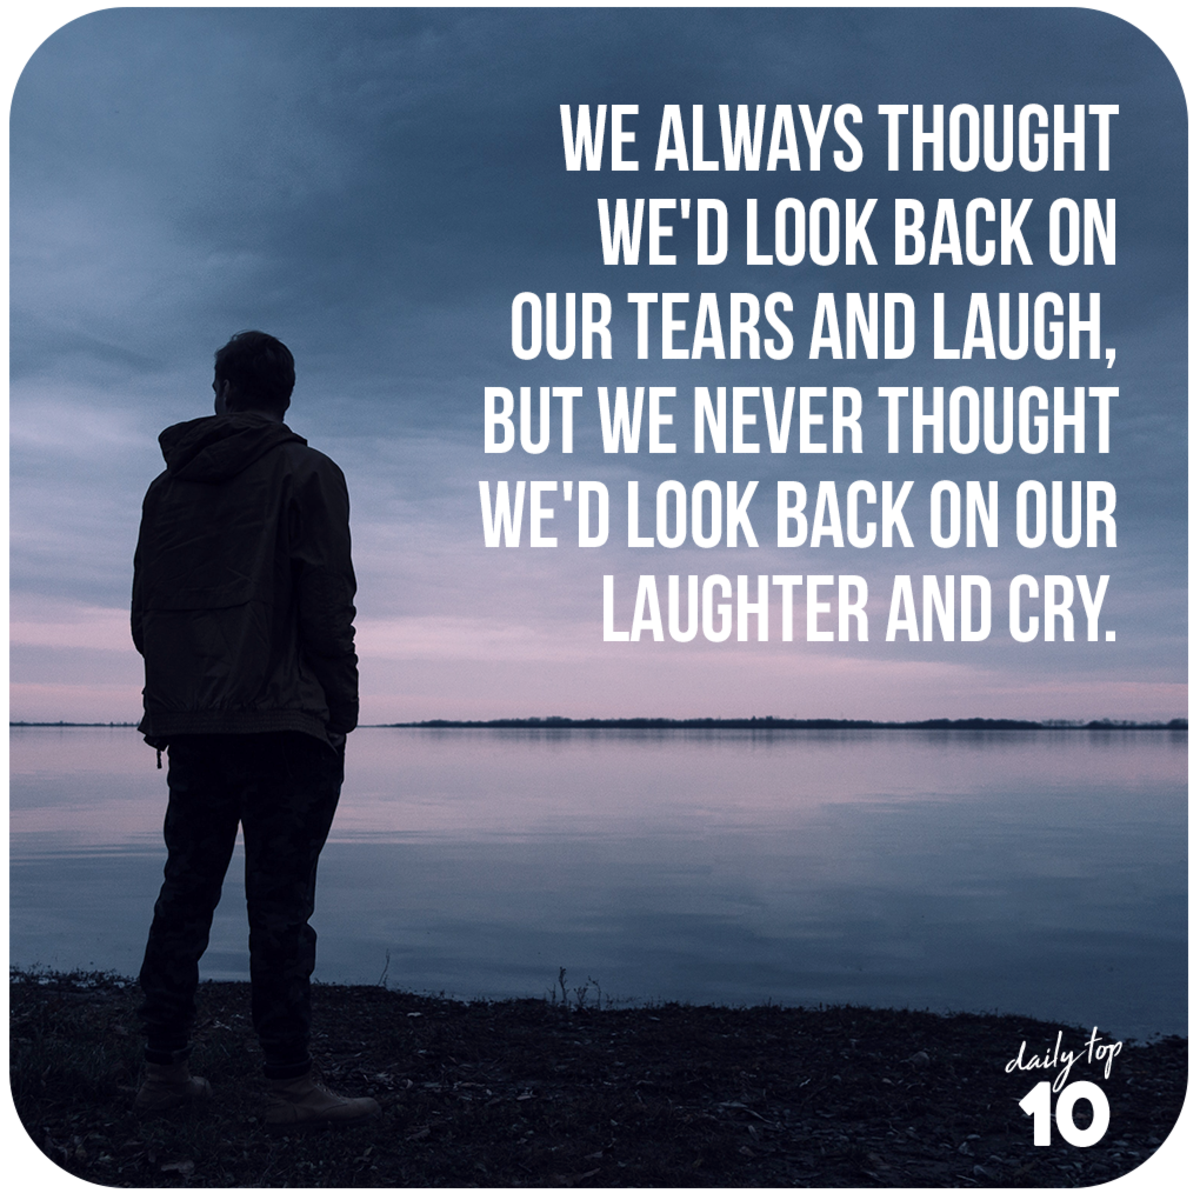 Look back on your tears and laugh.